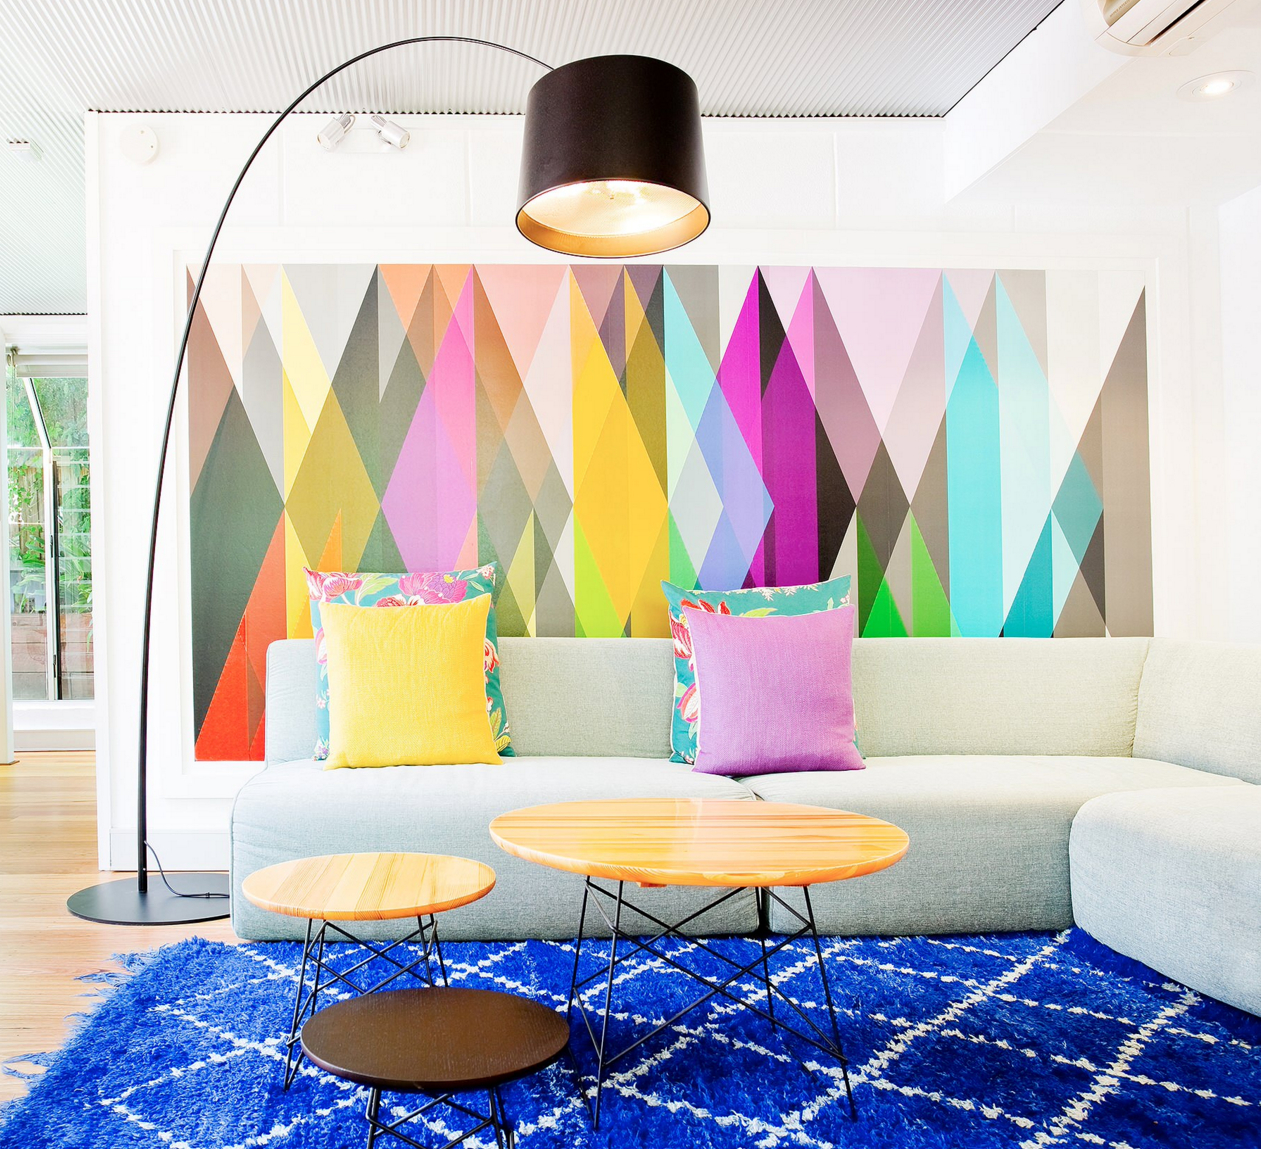 25 Dazzling Geometric Walls For The Modern Home - Freshome with regard to Contemporary Geometric Wall Decor (Image 2 of 30)